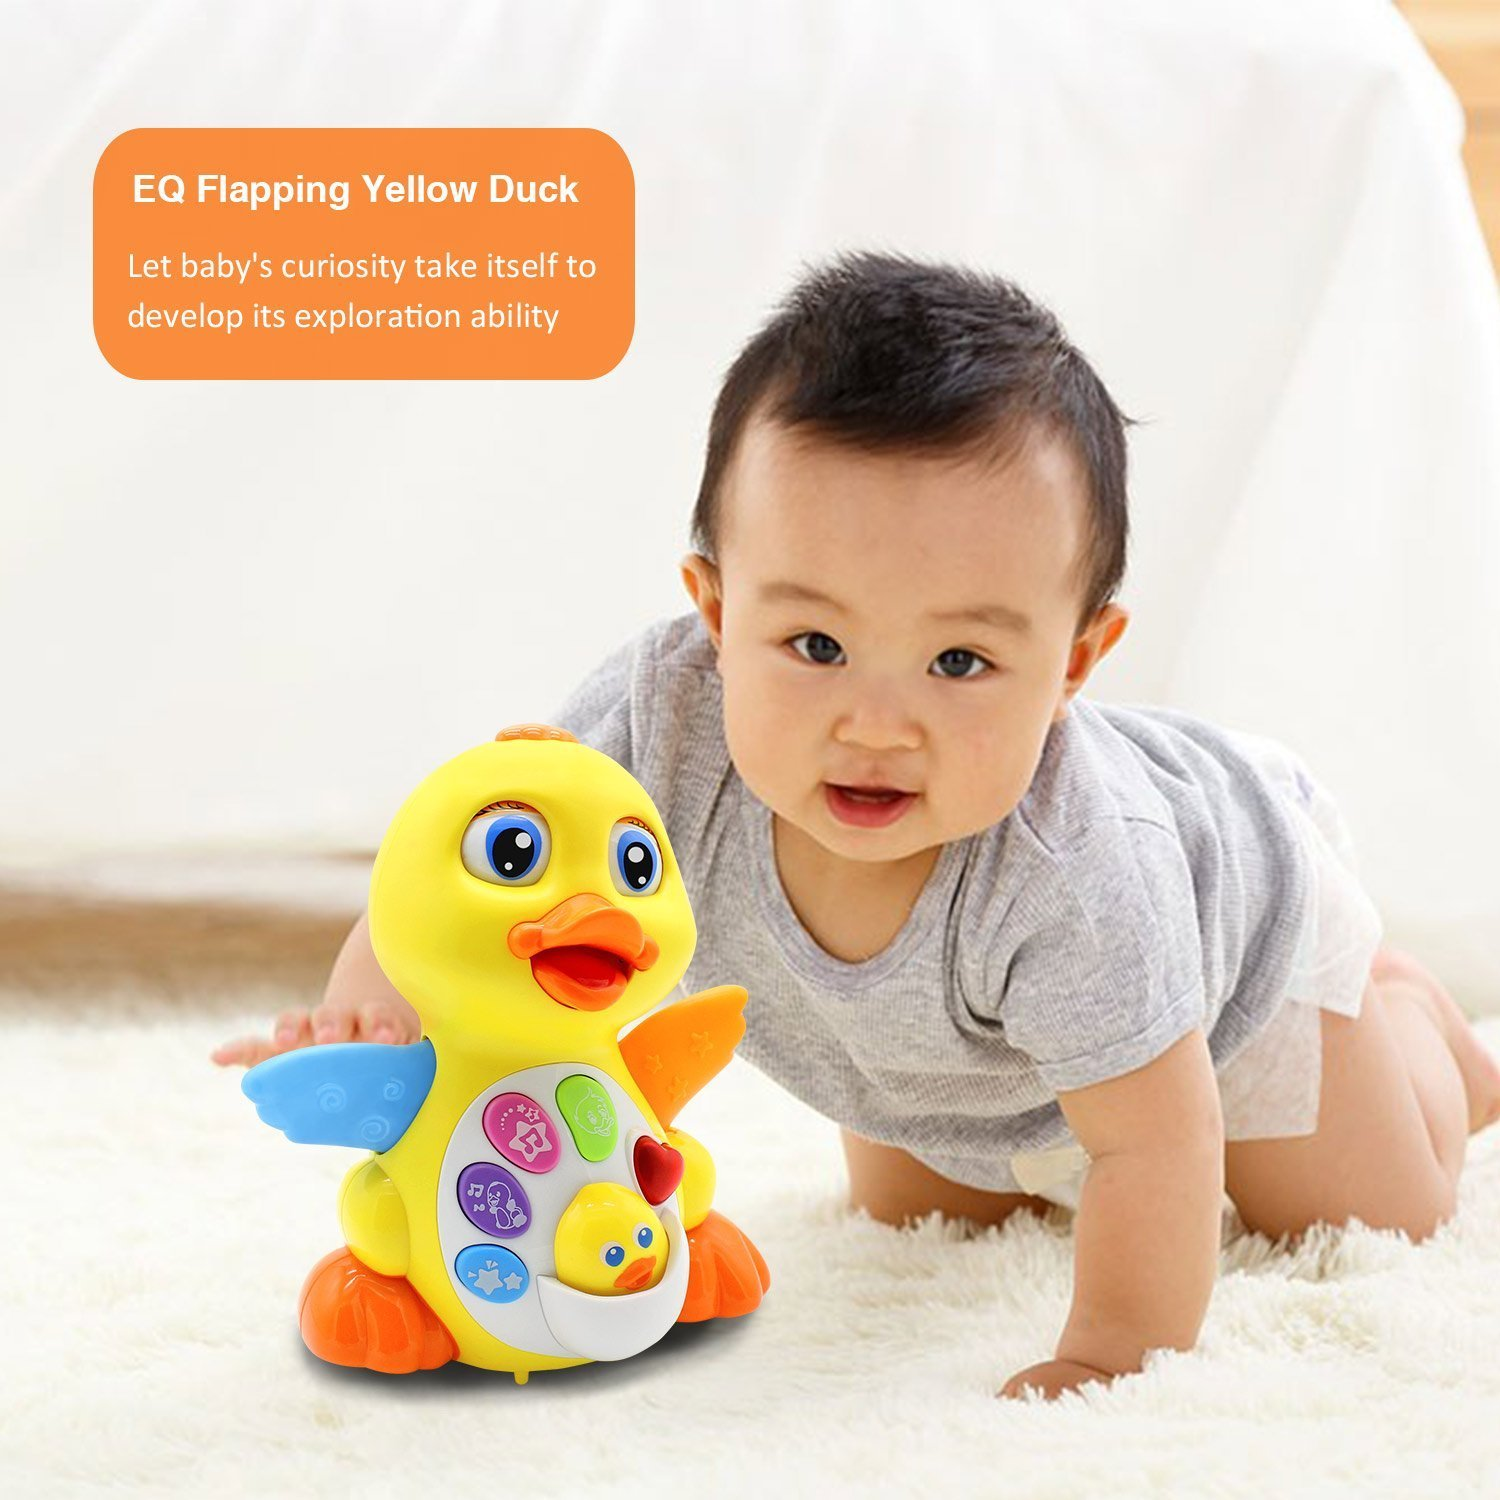 Amazon Baby Toys 6 to 12 Months up Lovely Dancing Yellow Duck